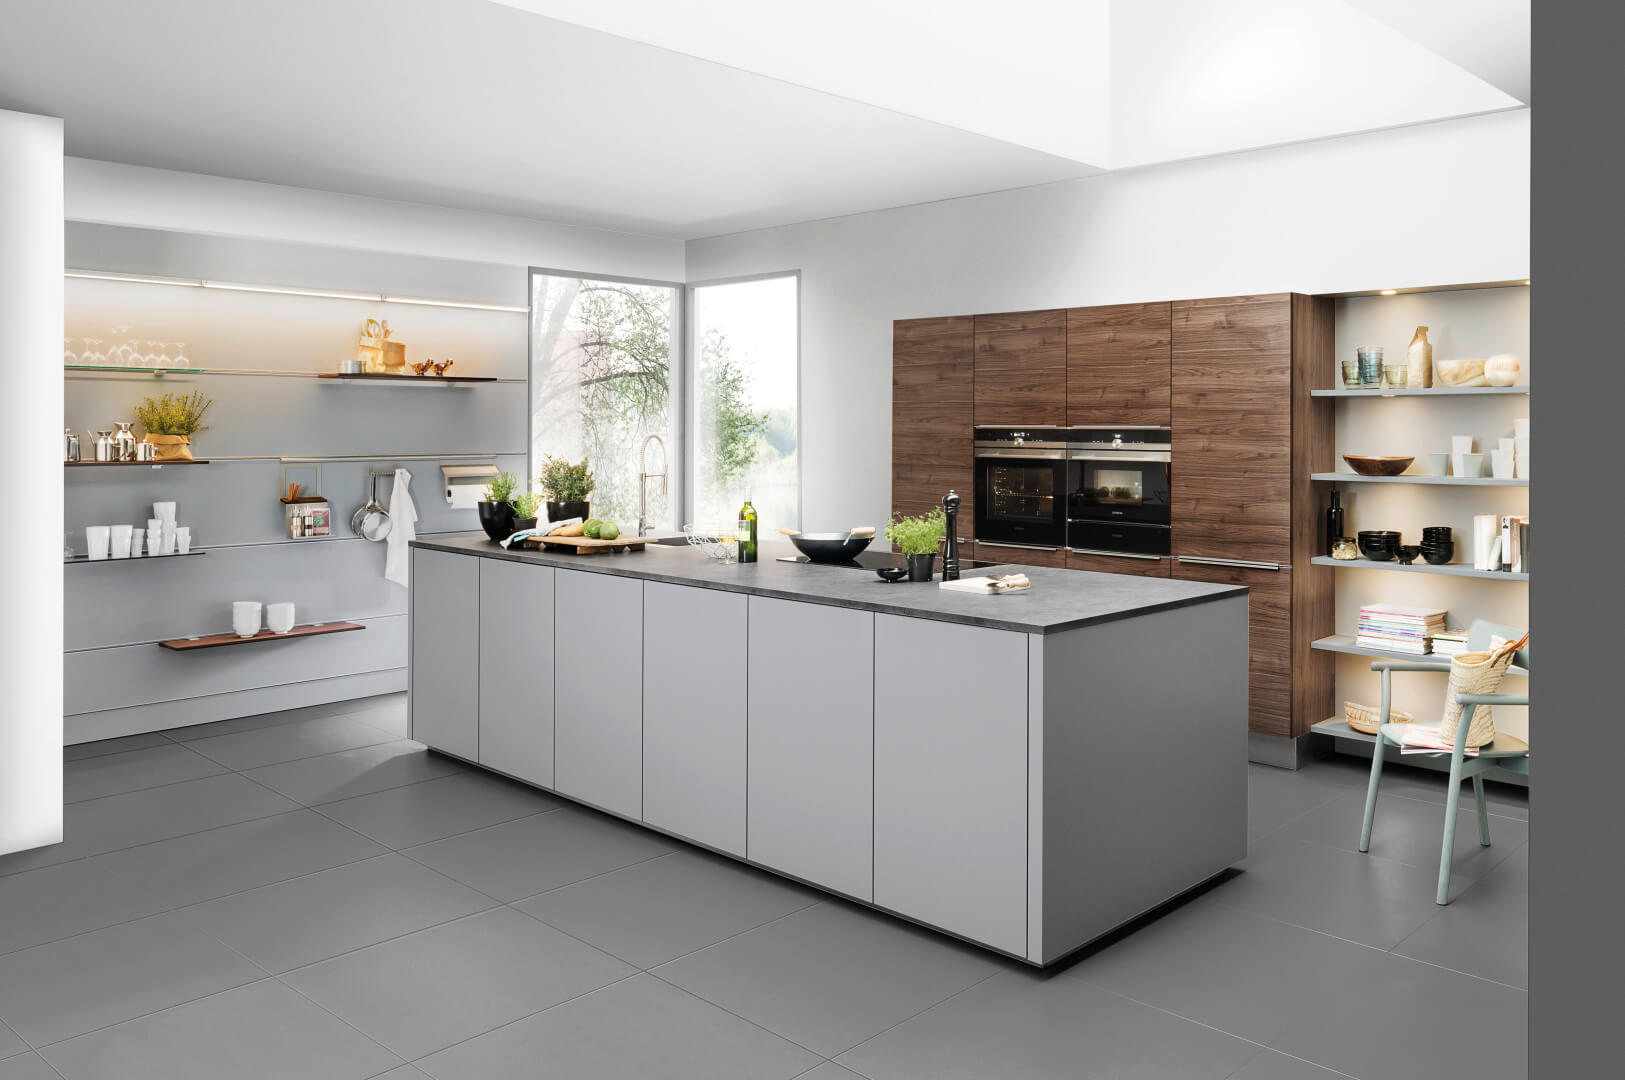 Nolte-Kitchens-Feel-Gallery1